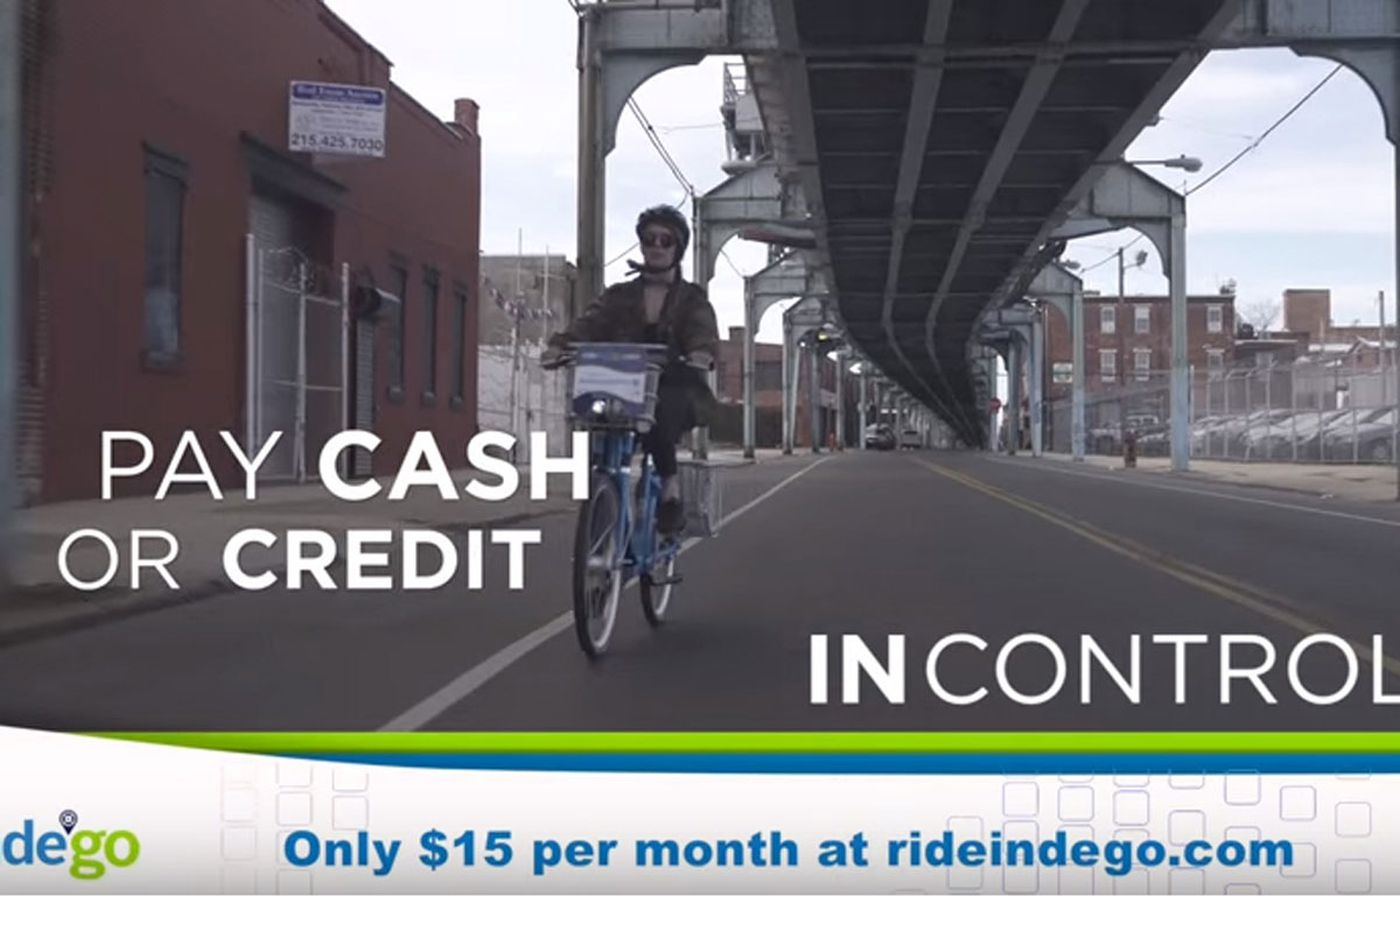 Bike-share Indego gears up with new stations